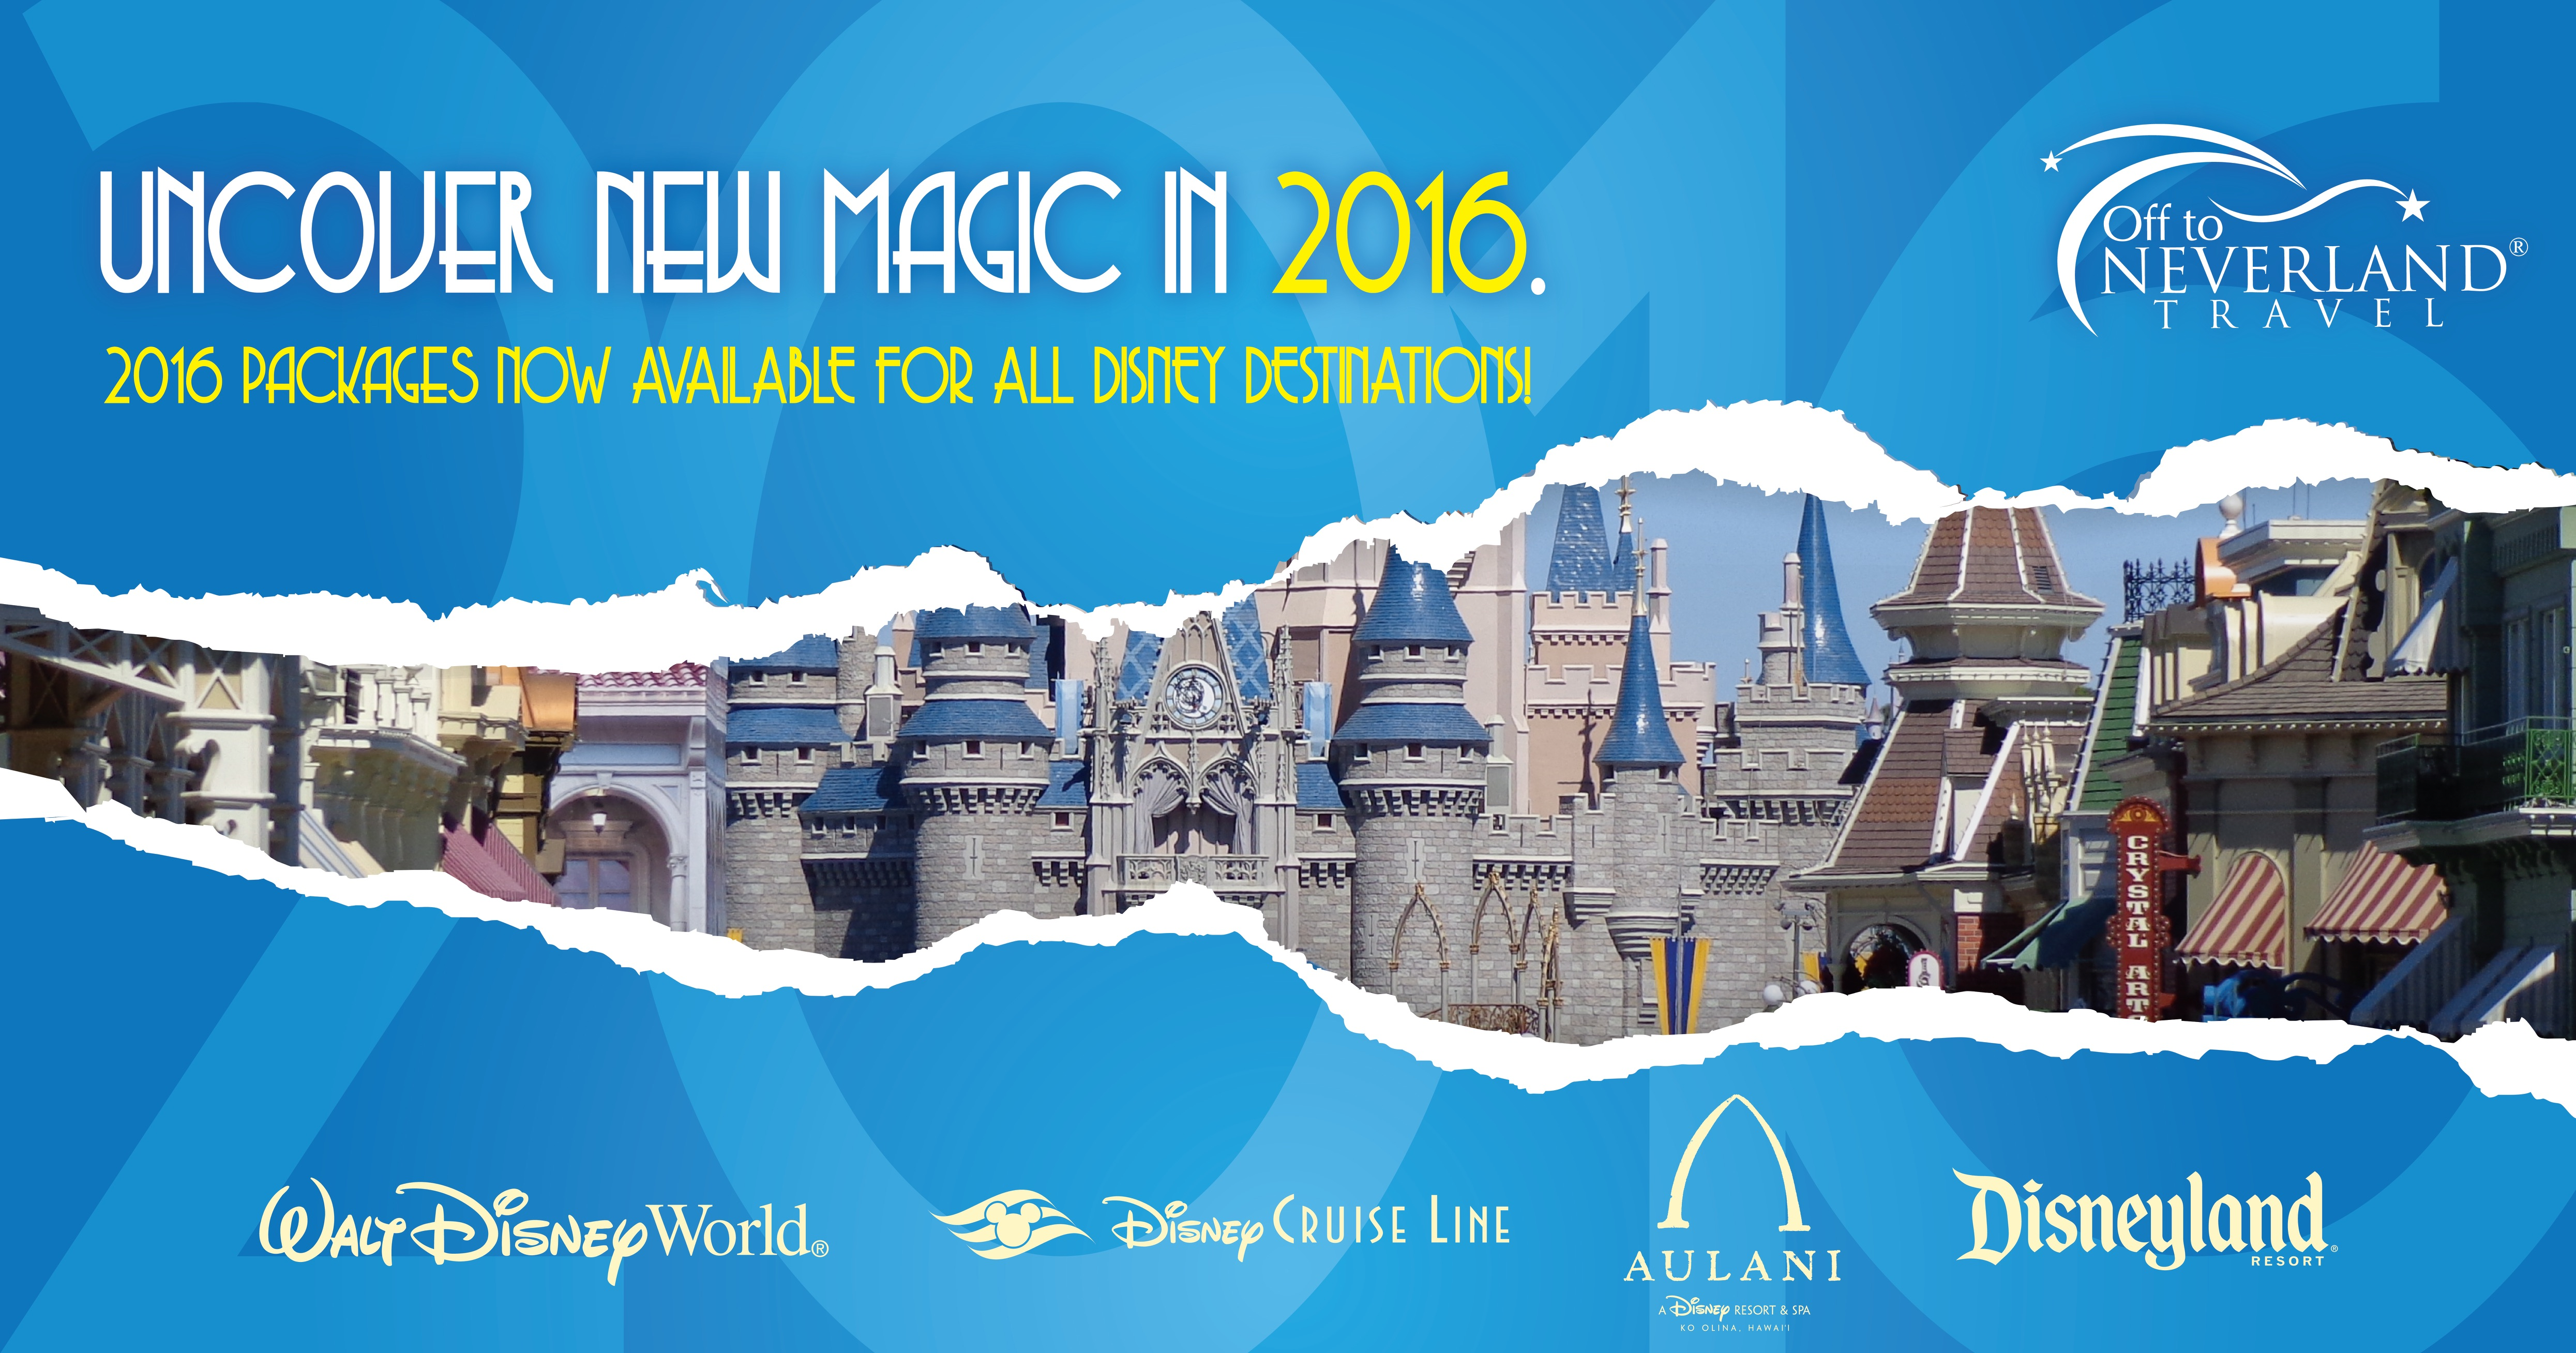 2016 vacation packages now available